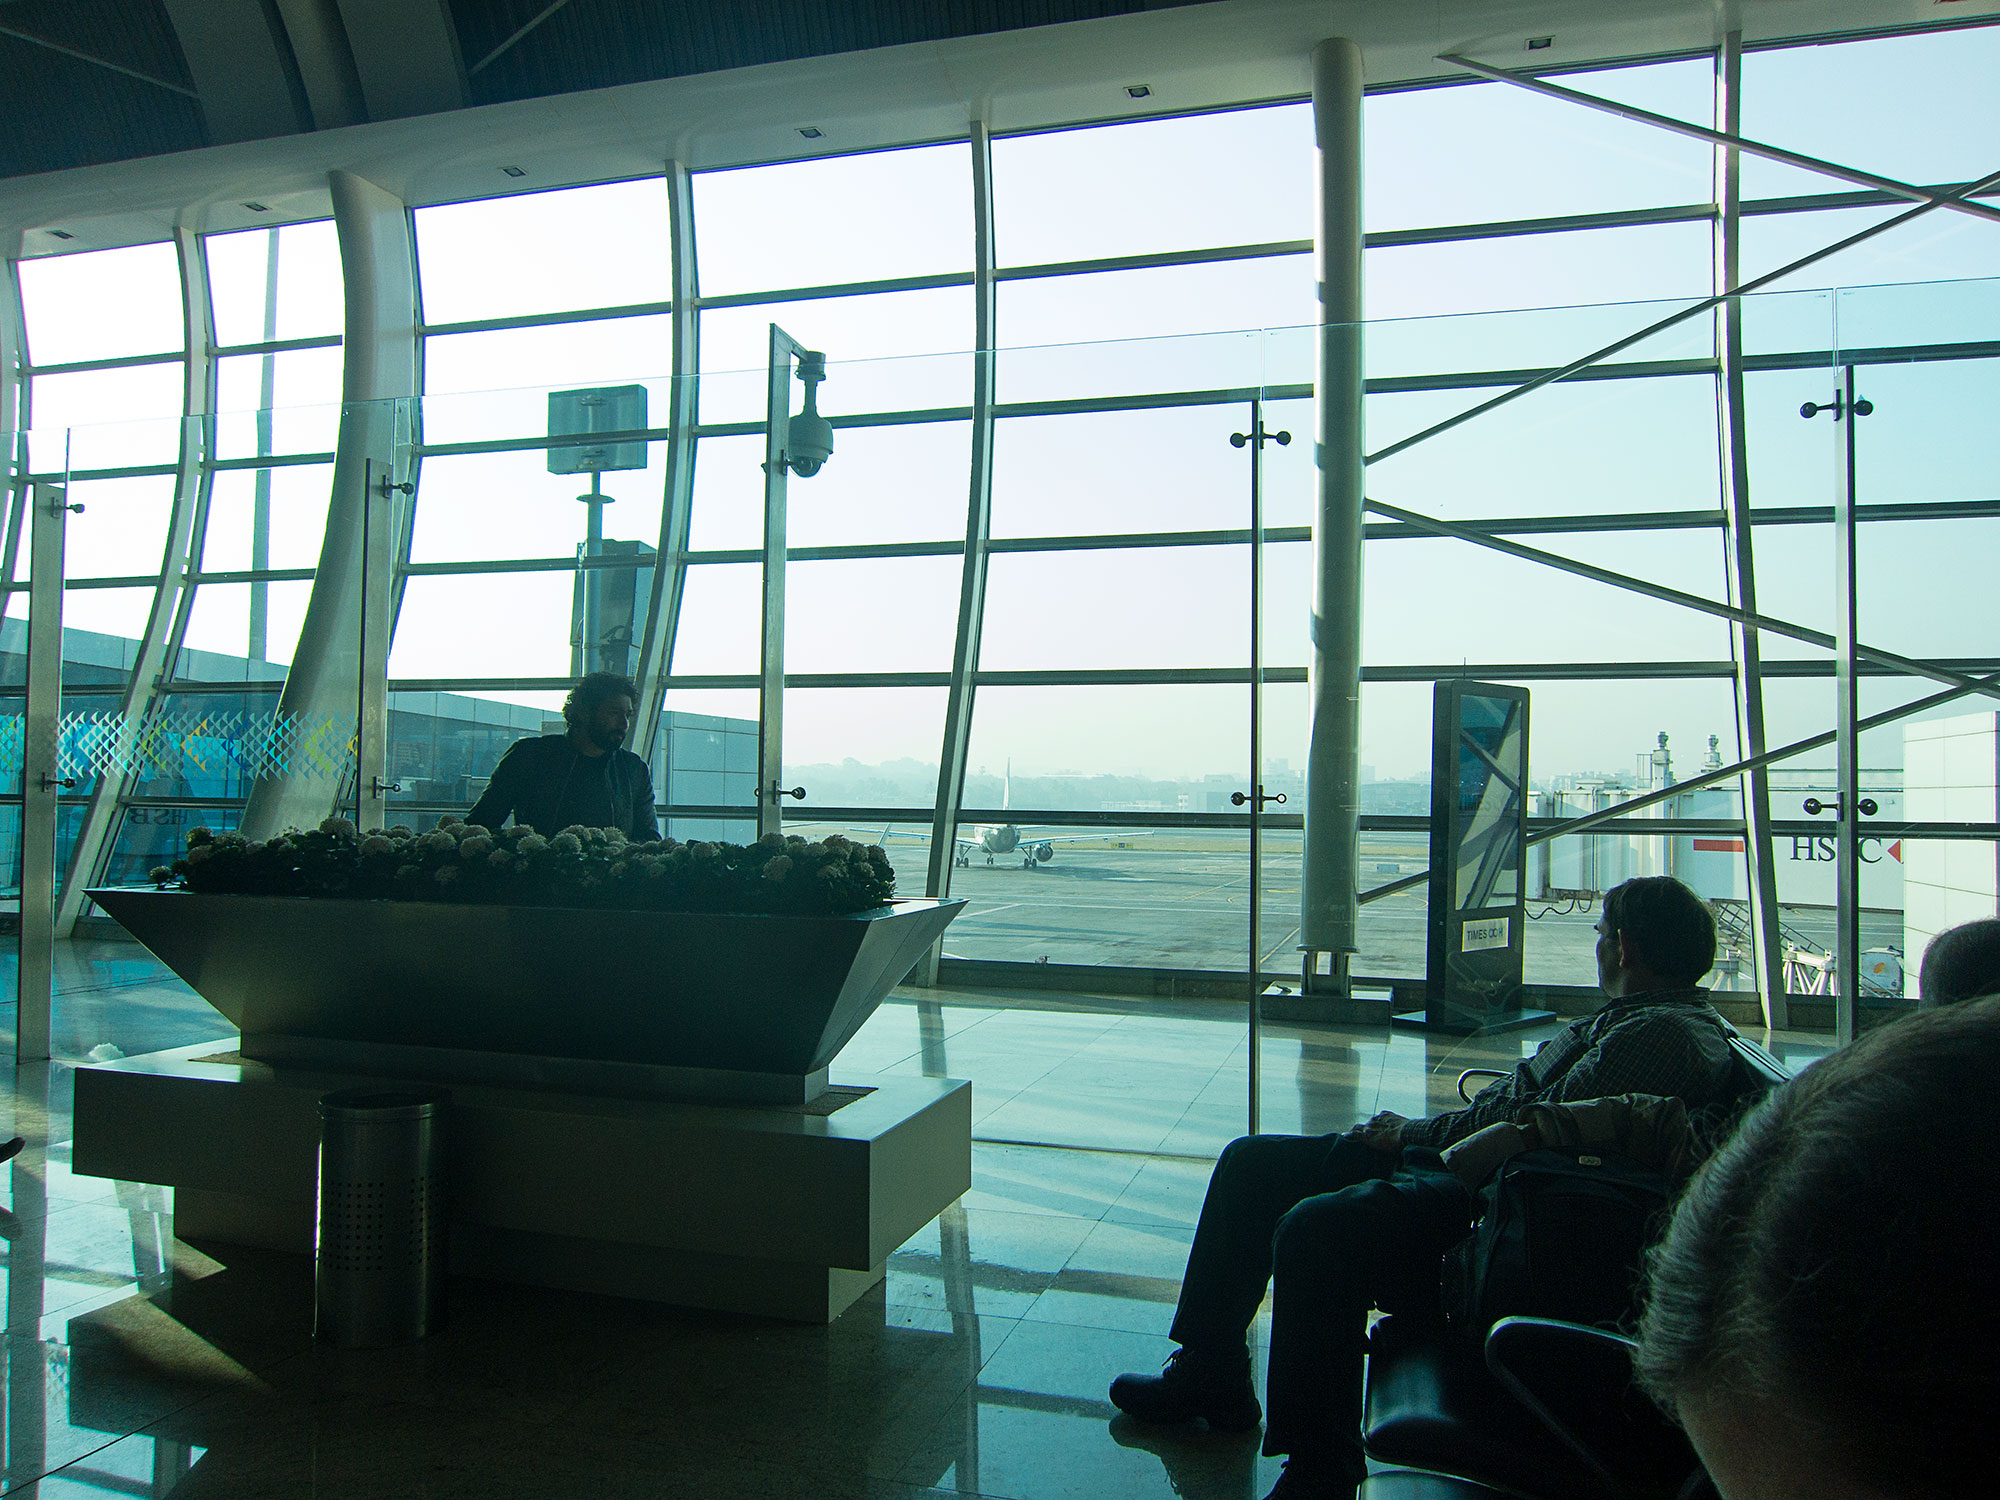 Looking out at the tarmac in the Mumbai National Airport.